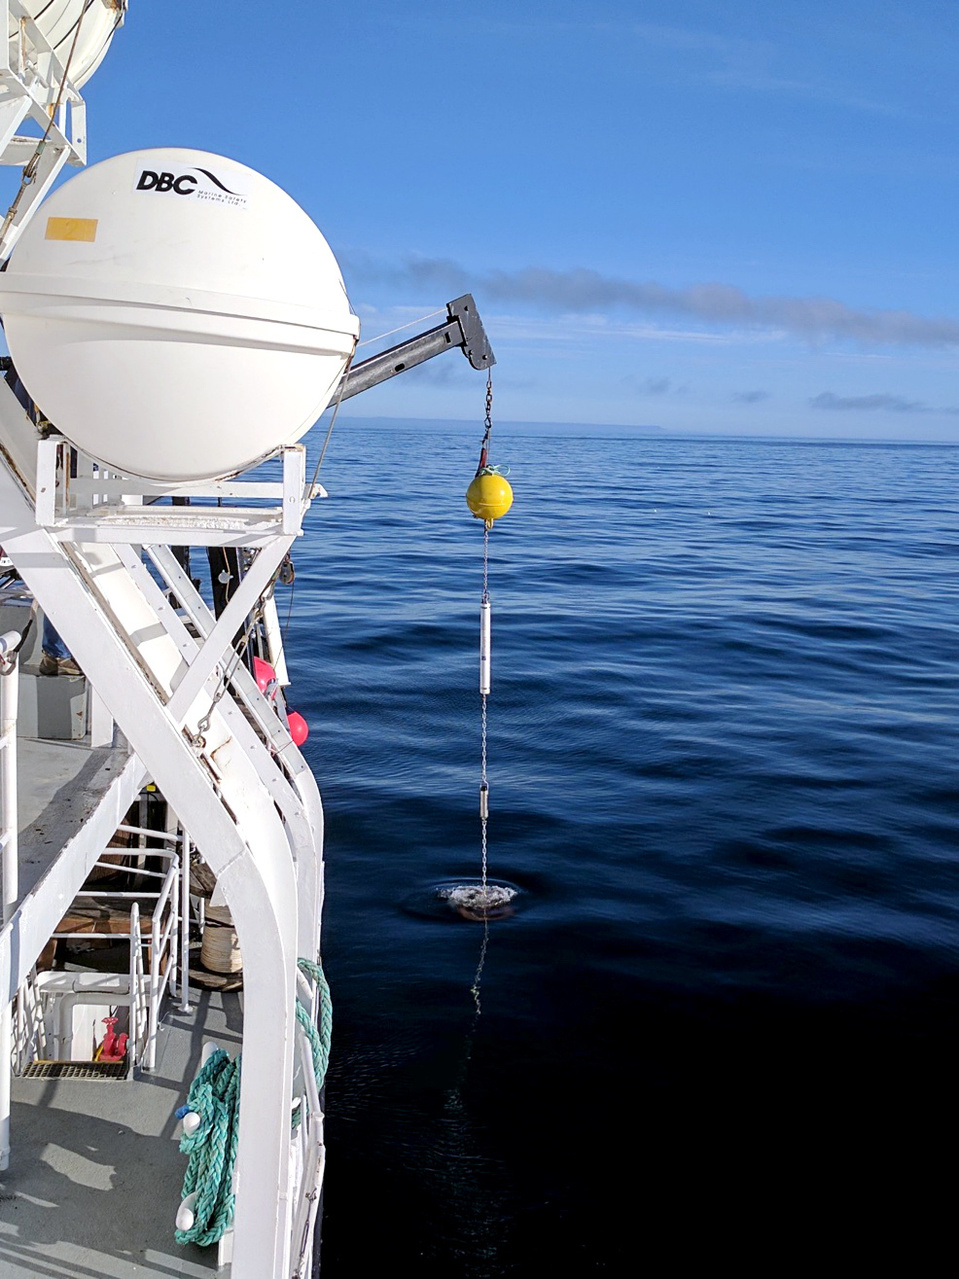 NOAA's Acoustic Studies Equipment, photo credit Robert Levine